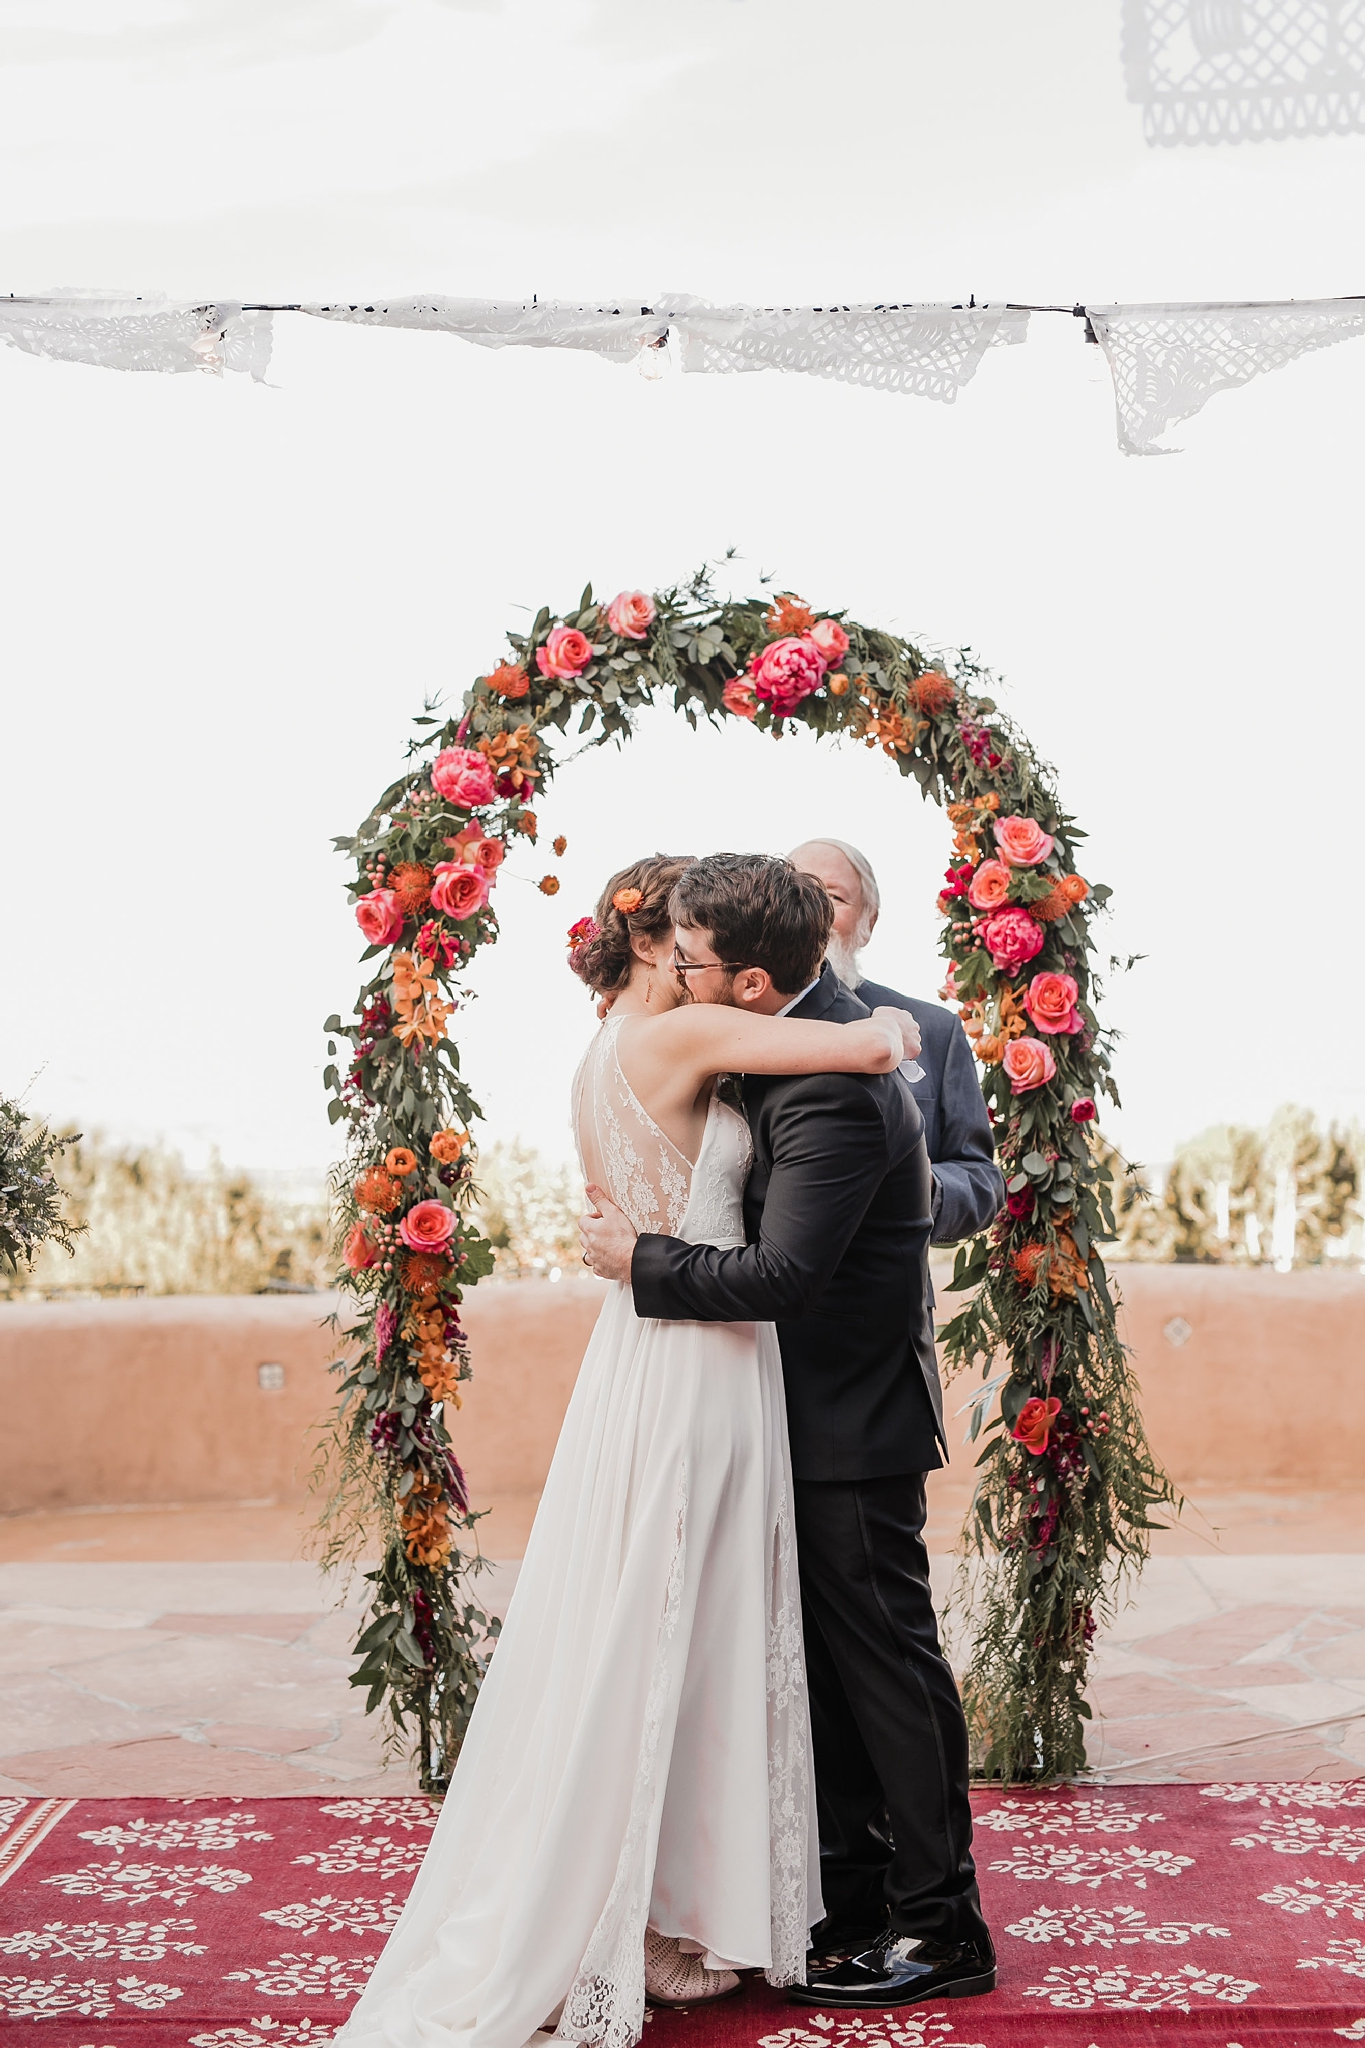 Alicia+lucia+photography+-+albuquerque+wedding+photographer+-+santa+fe+wedding+photography+-+new+mexico+wedding+photographer+-+new+mexico+wedding+-+wedding+vows+-+writing+your+own+vows+-+wedding+inspo_0035.jpg